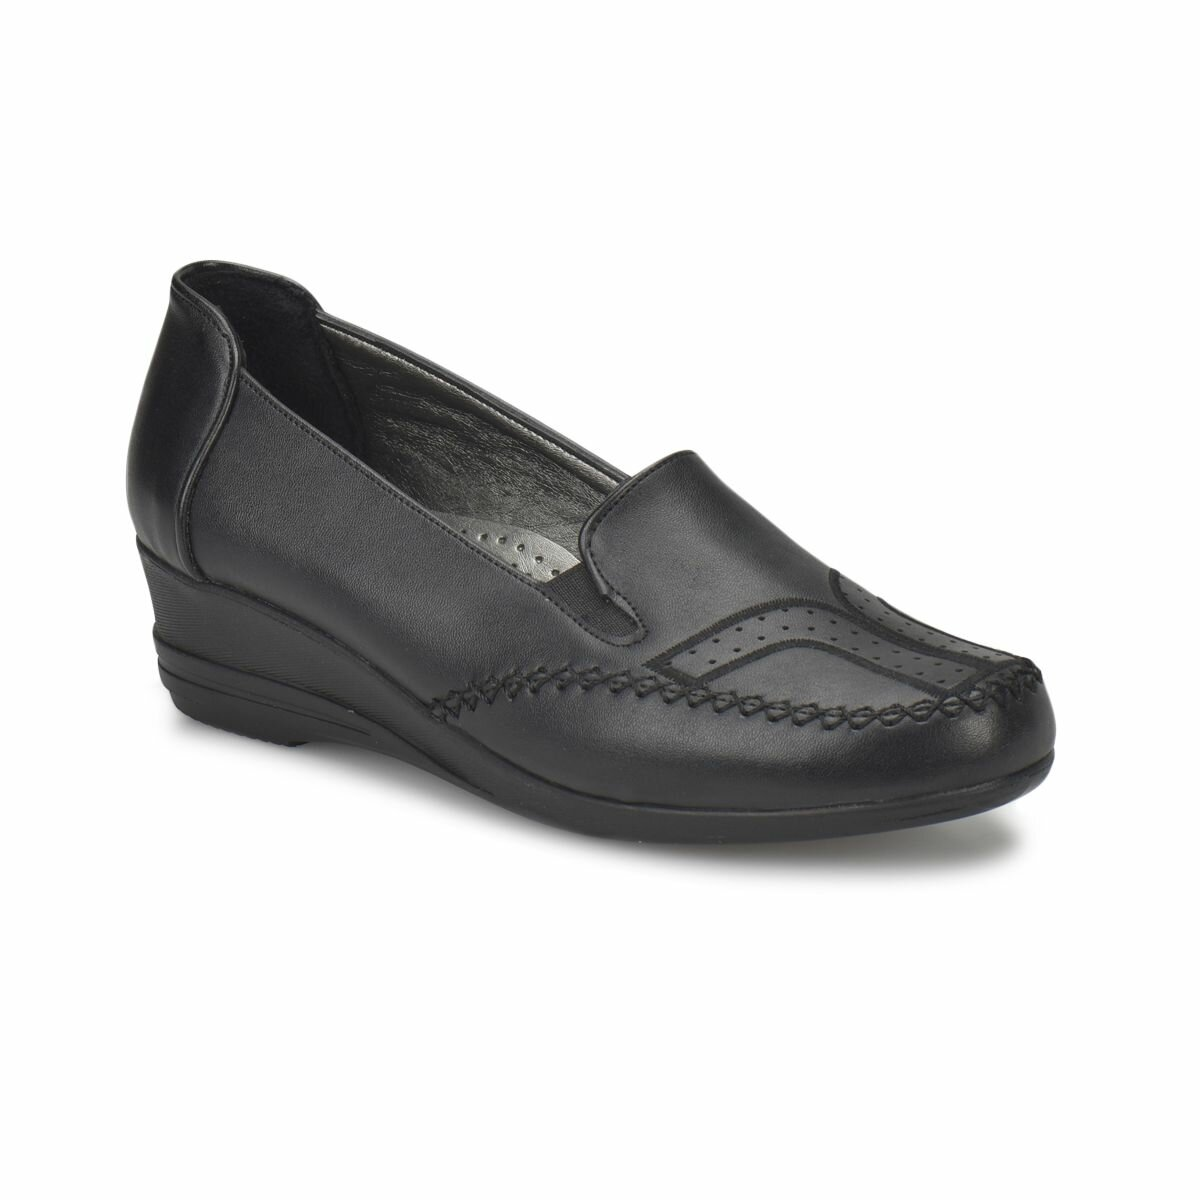 FLO 81. 156564.Z Black Women 'S Classic Shoes Polaris